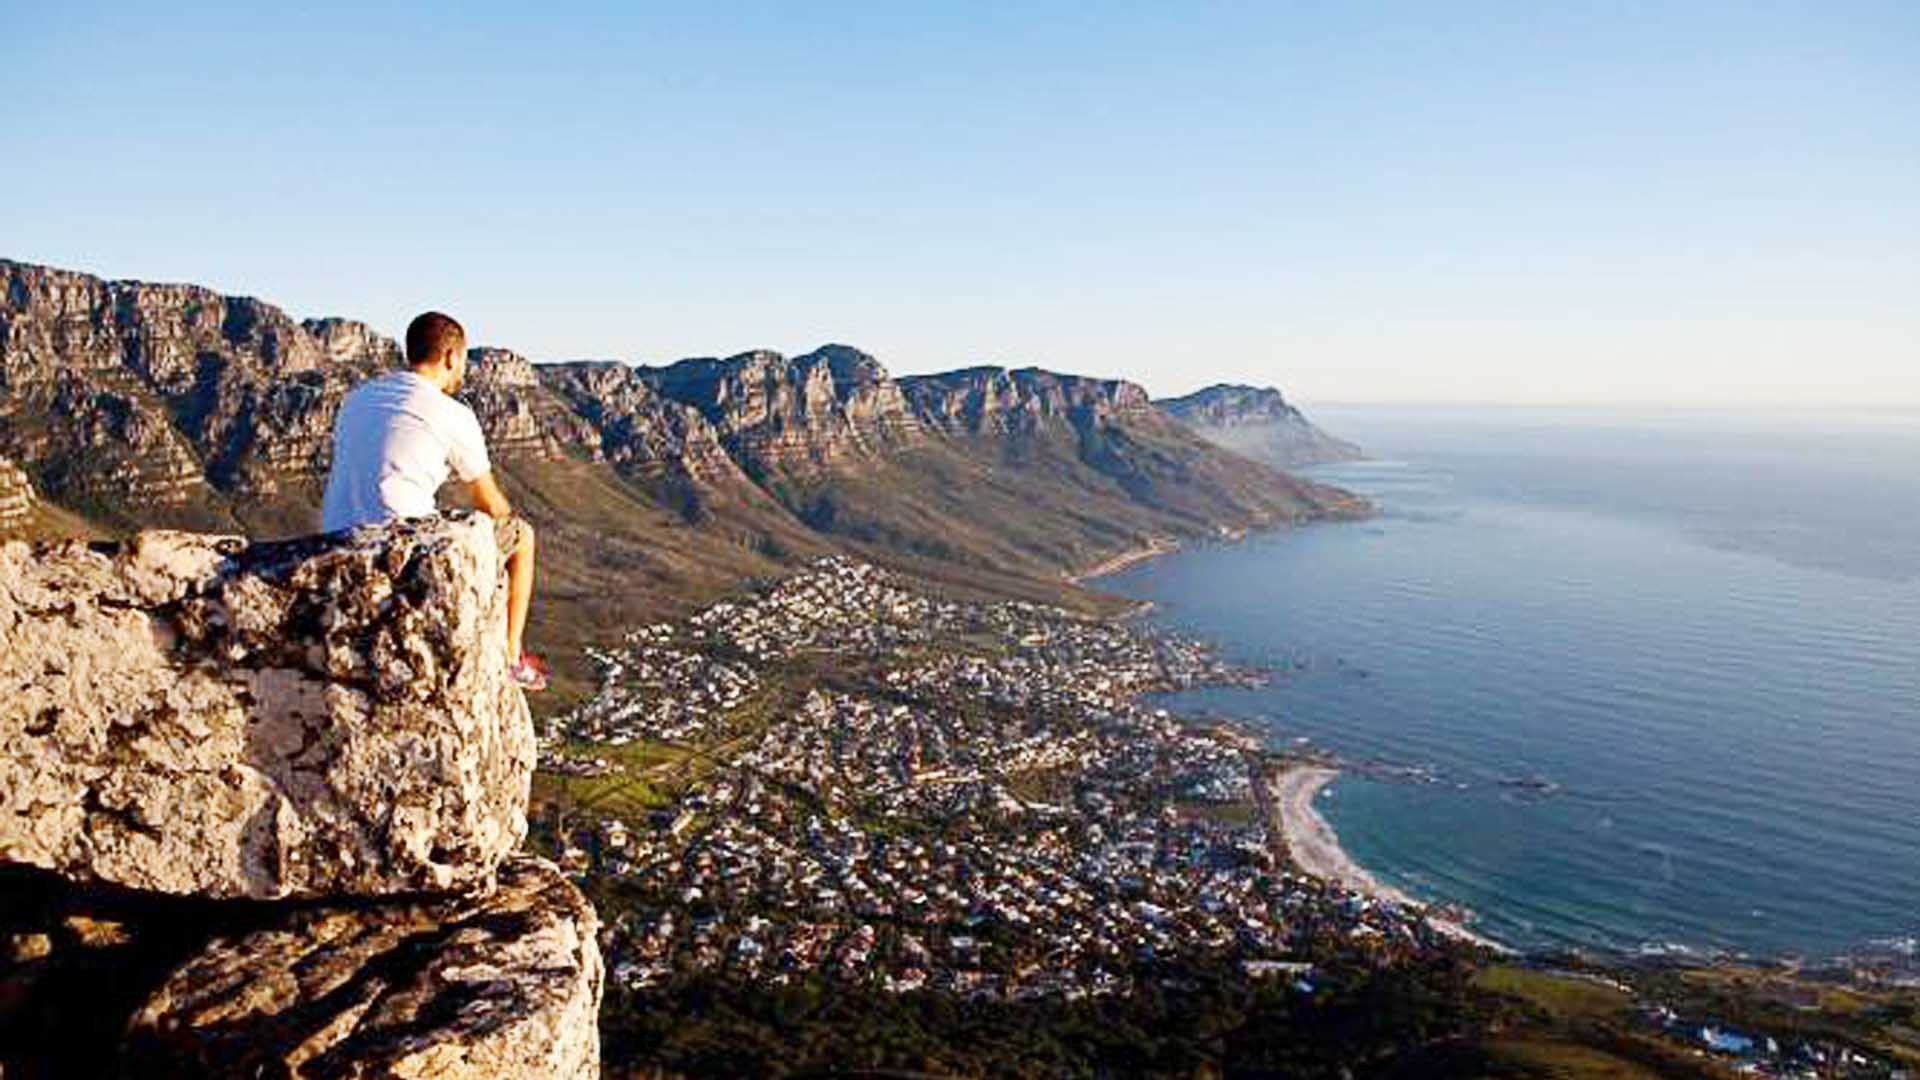 Camps Bay in South Africa. Photo credits: www.culturetrip.com